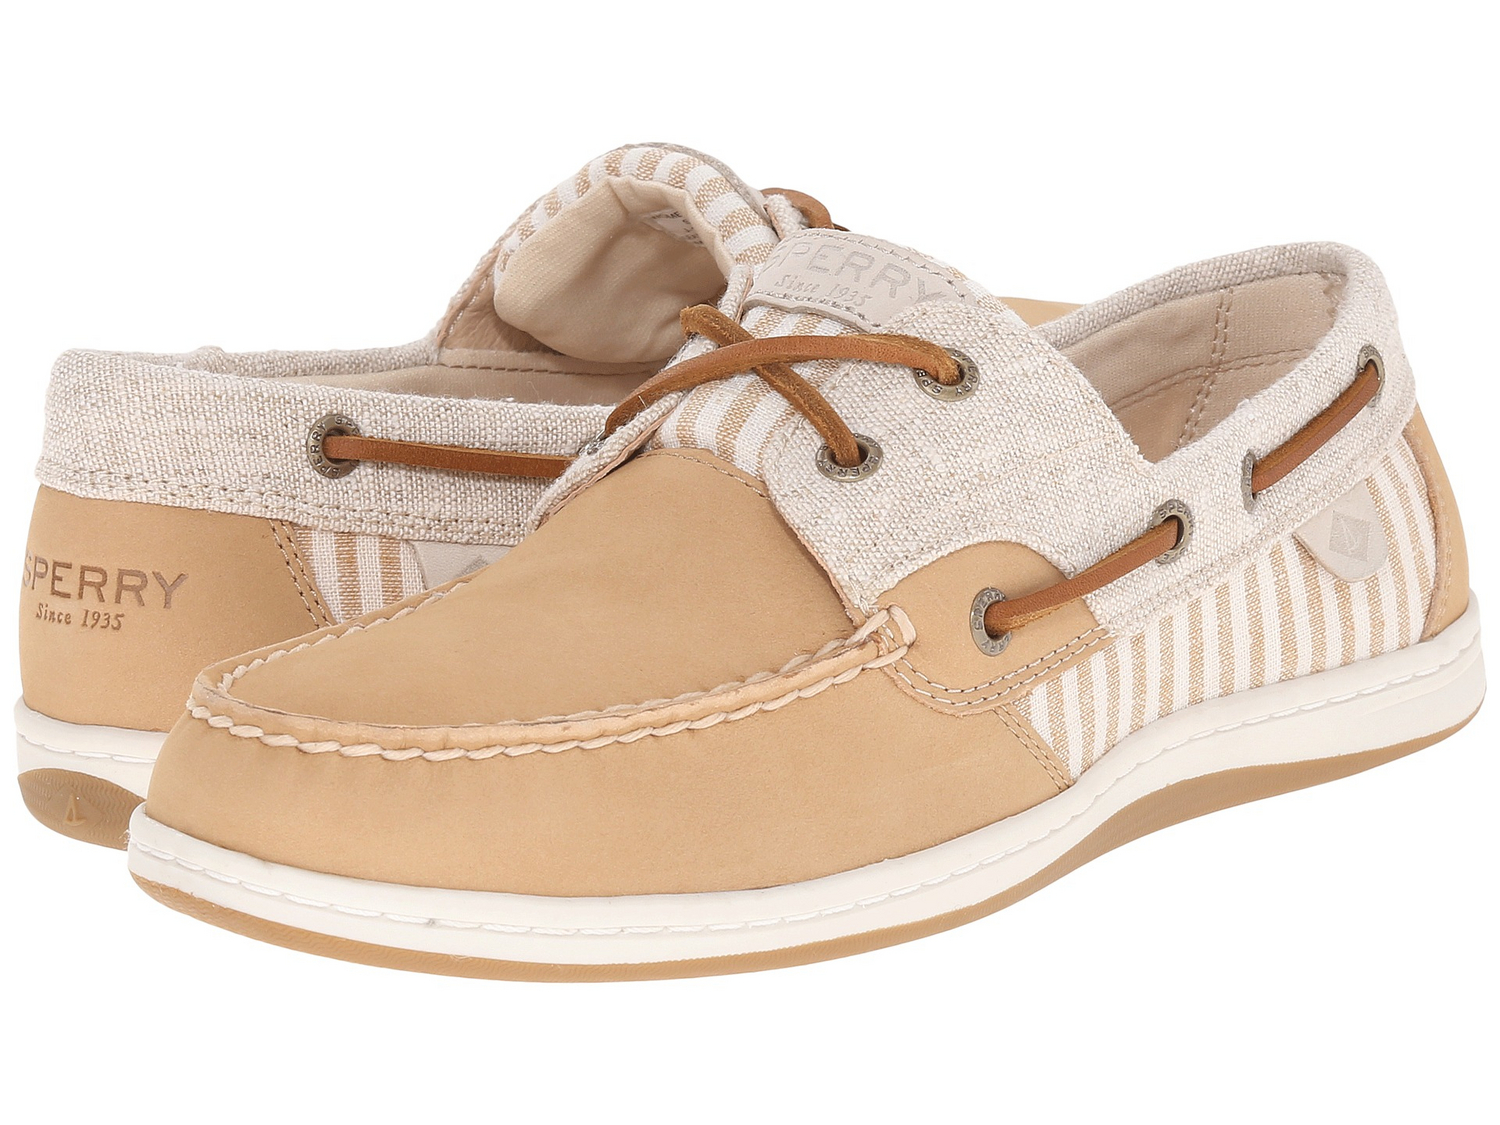 Women's Sperry Top-Sider Koifish Stripe Boat Shoe marketable cheap online Fmgvc39rn